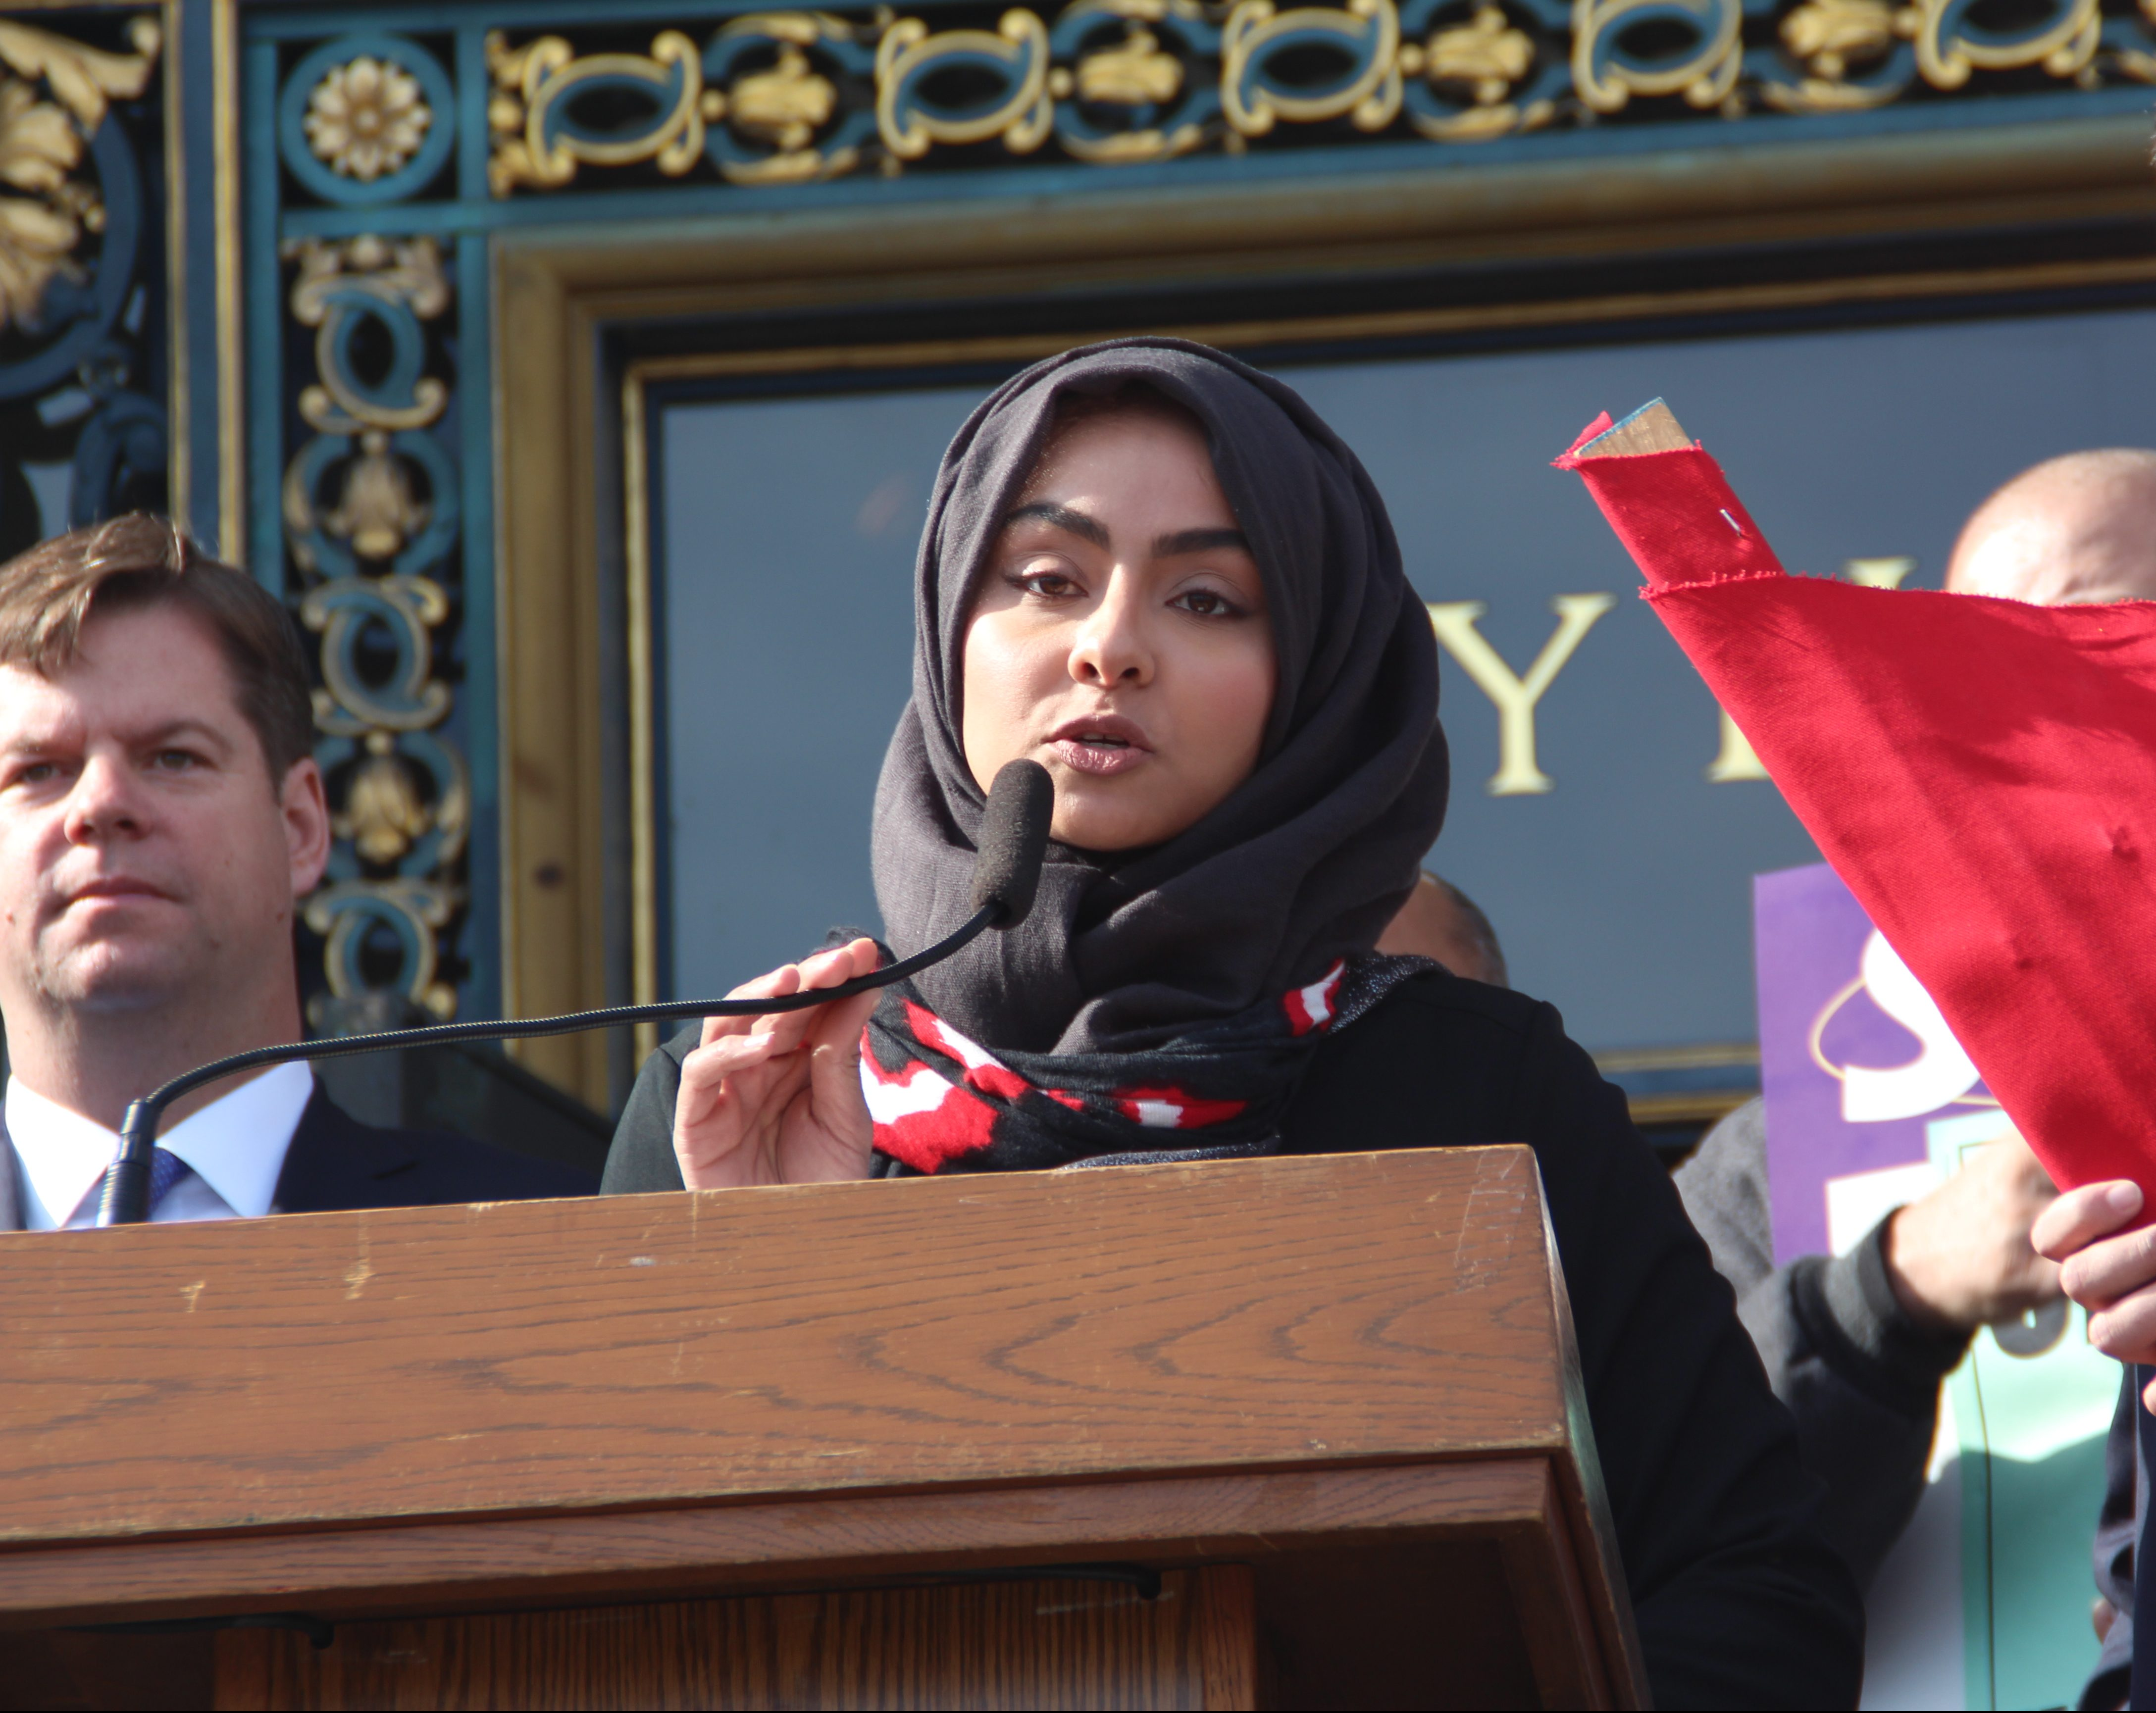 Jehan Hakim, community activist with the Asian Law Caucus, said that President Trumps executive order violated the very foundation of American values. Photo by Sana Saleem.